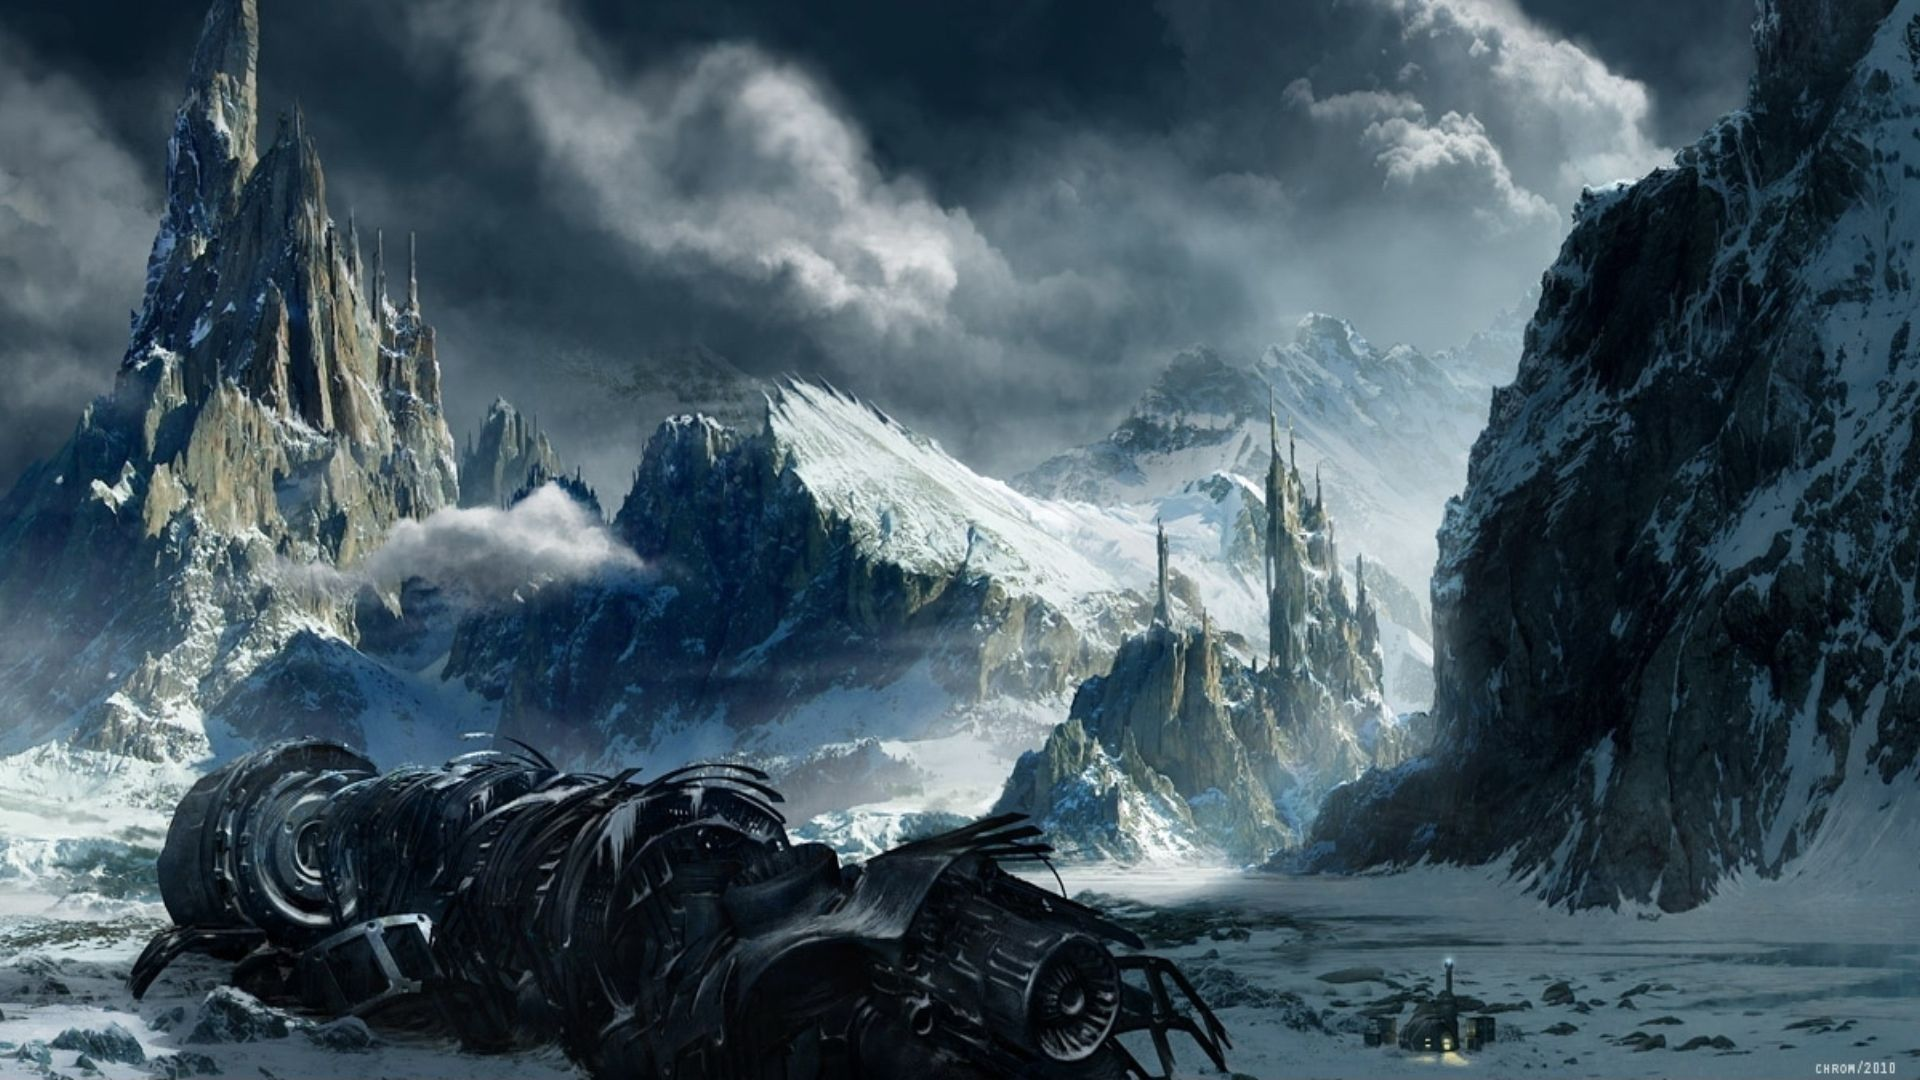 Sci-Fi Landscape Wallpaper | fantasy landscapes wallpapers ...